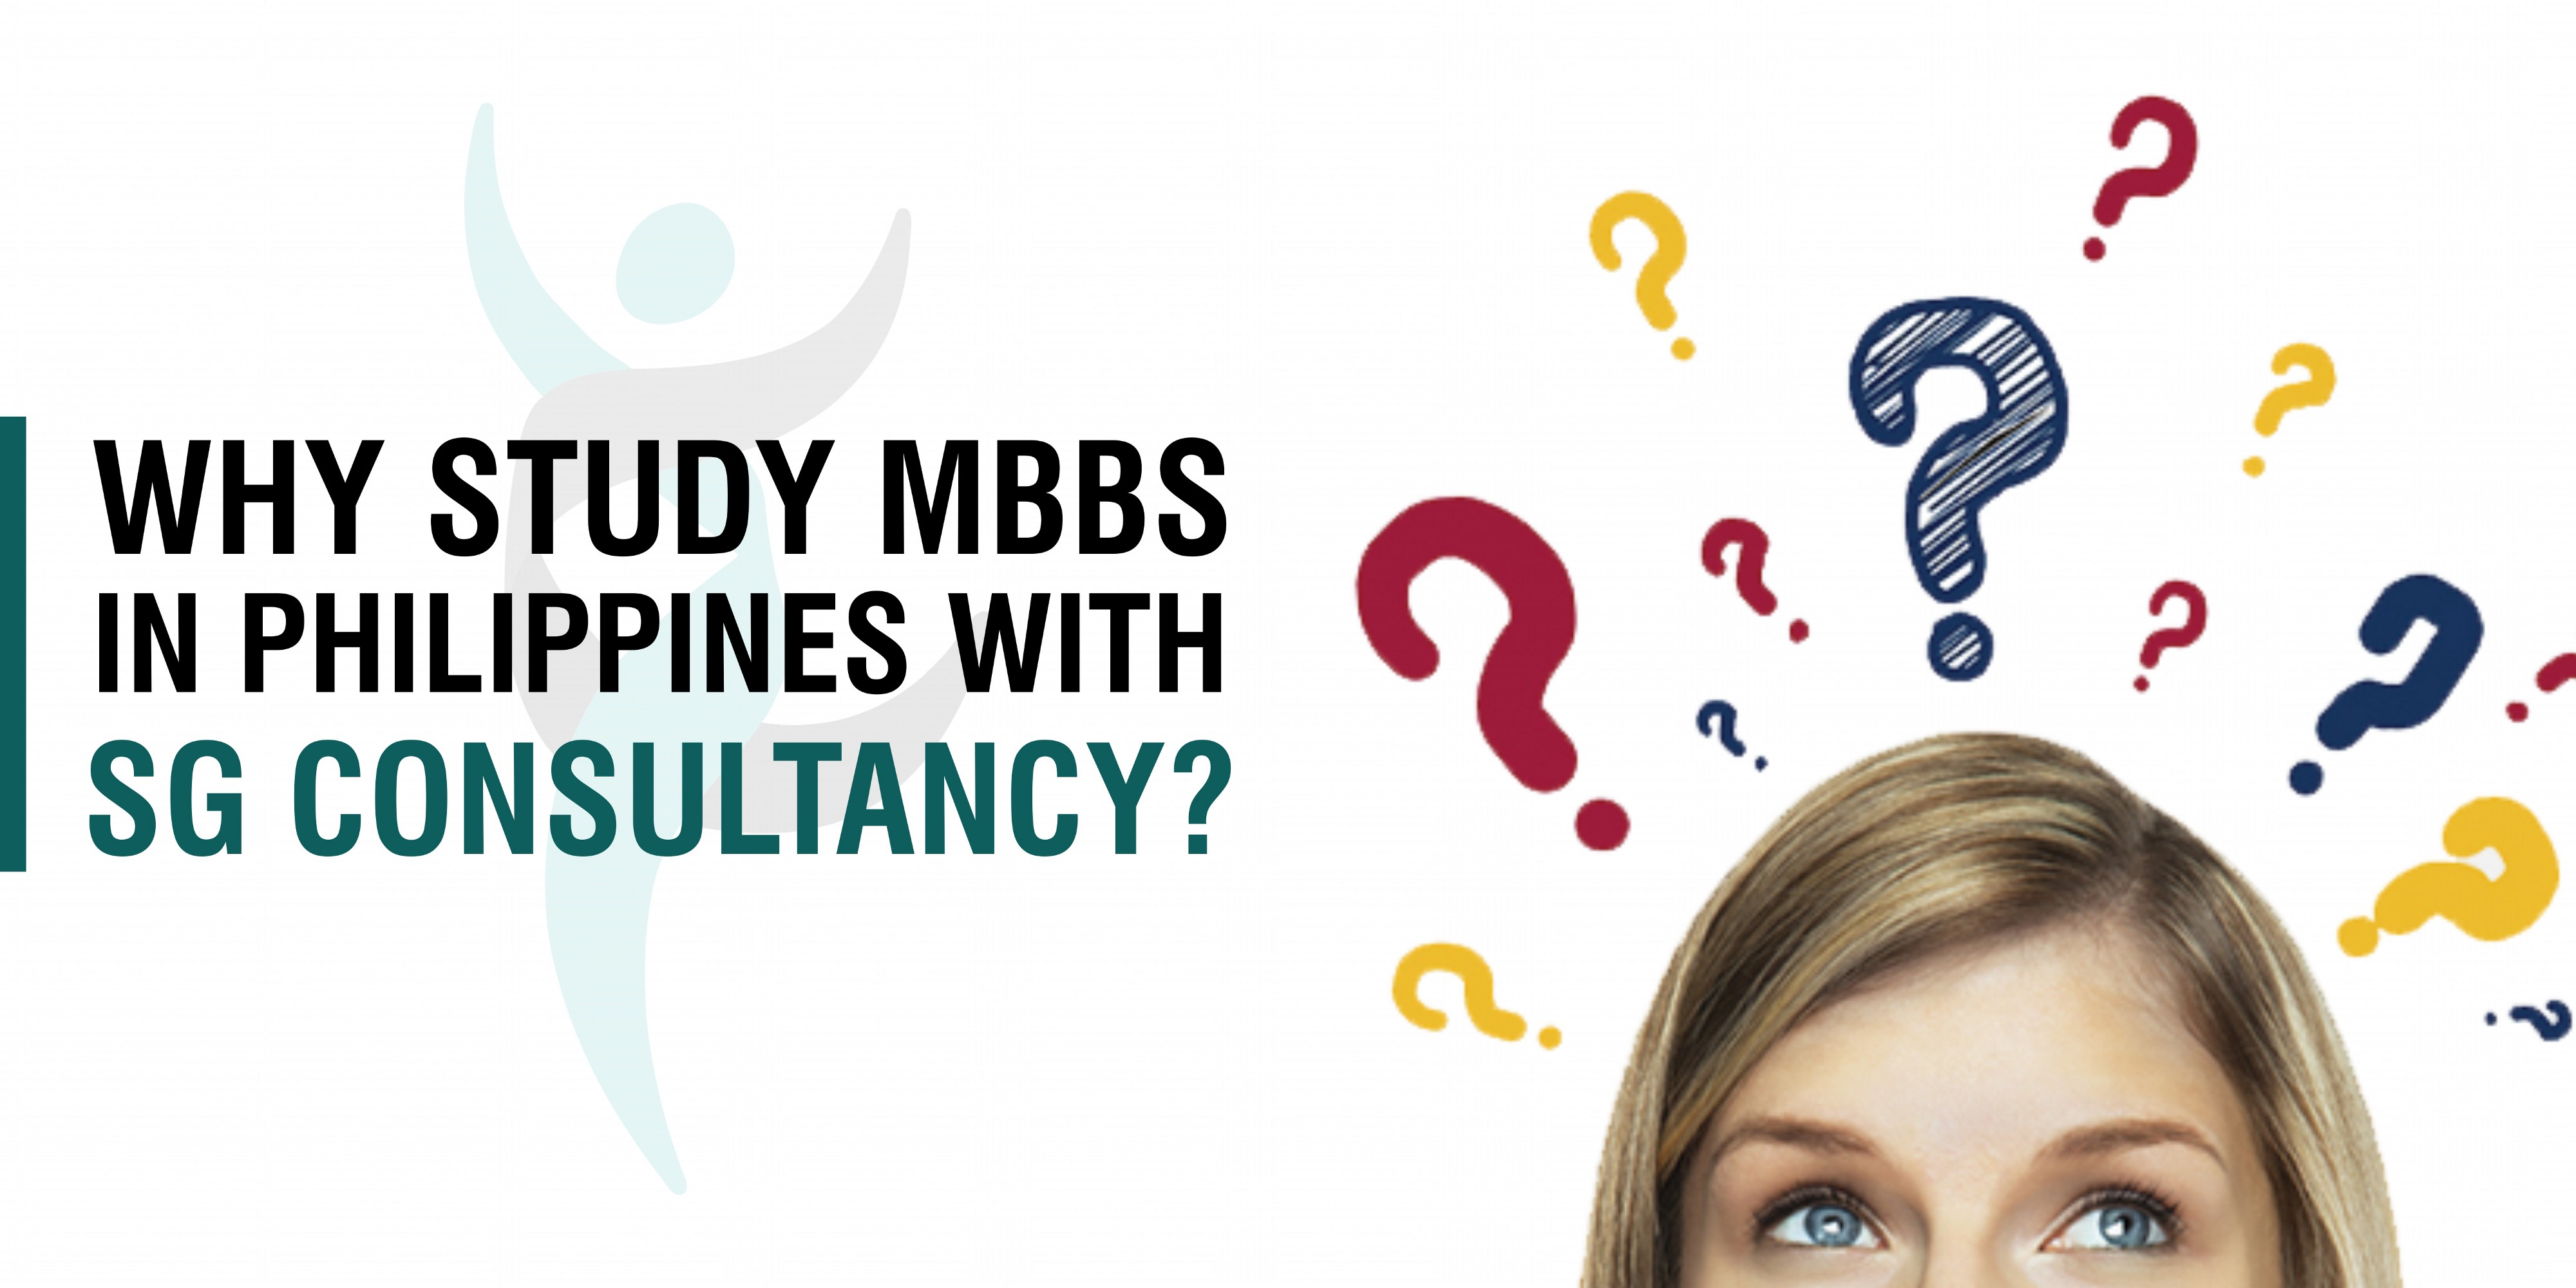 Why Study Mbbs In Philippines With Sg Consultancy Study Mbbs